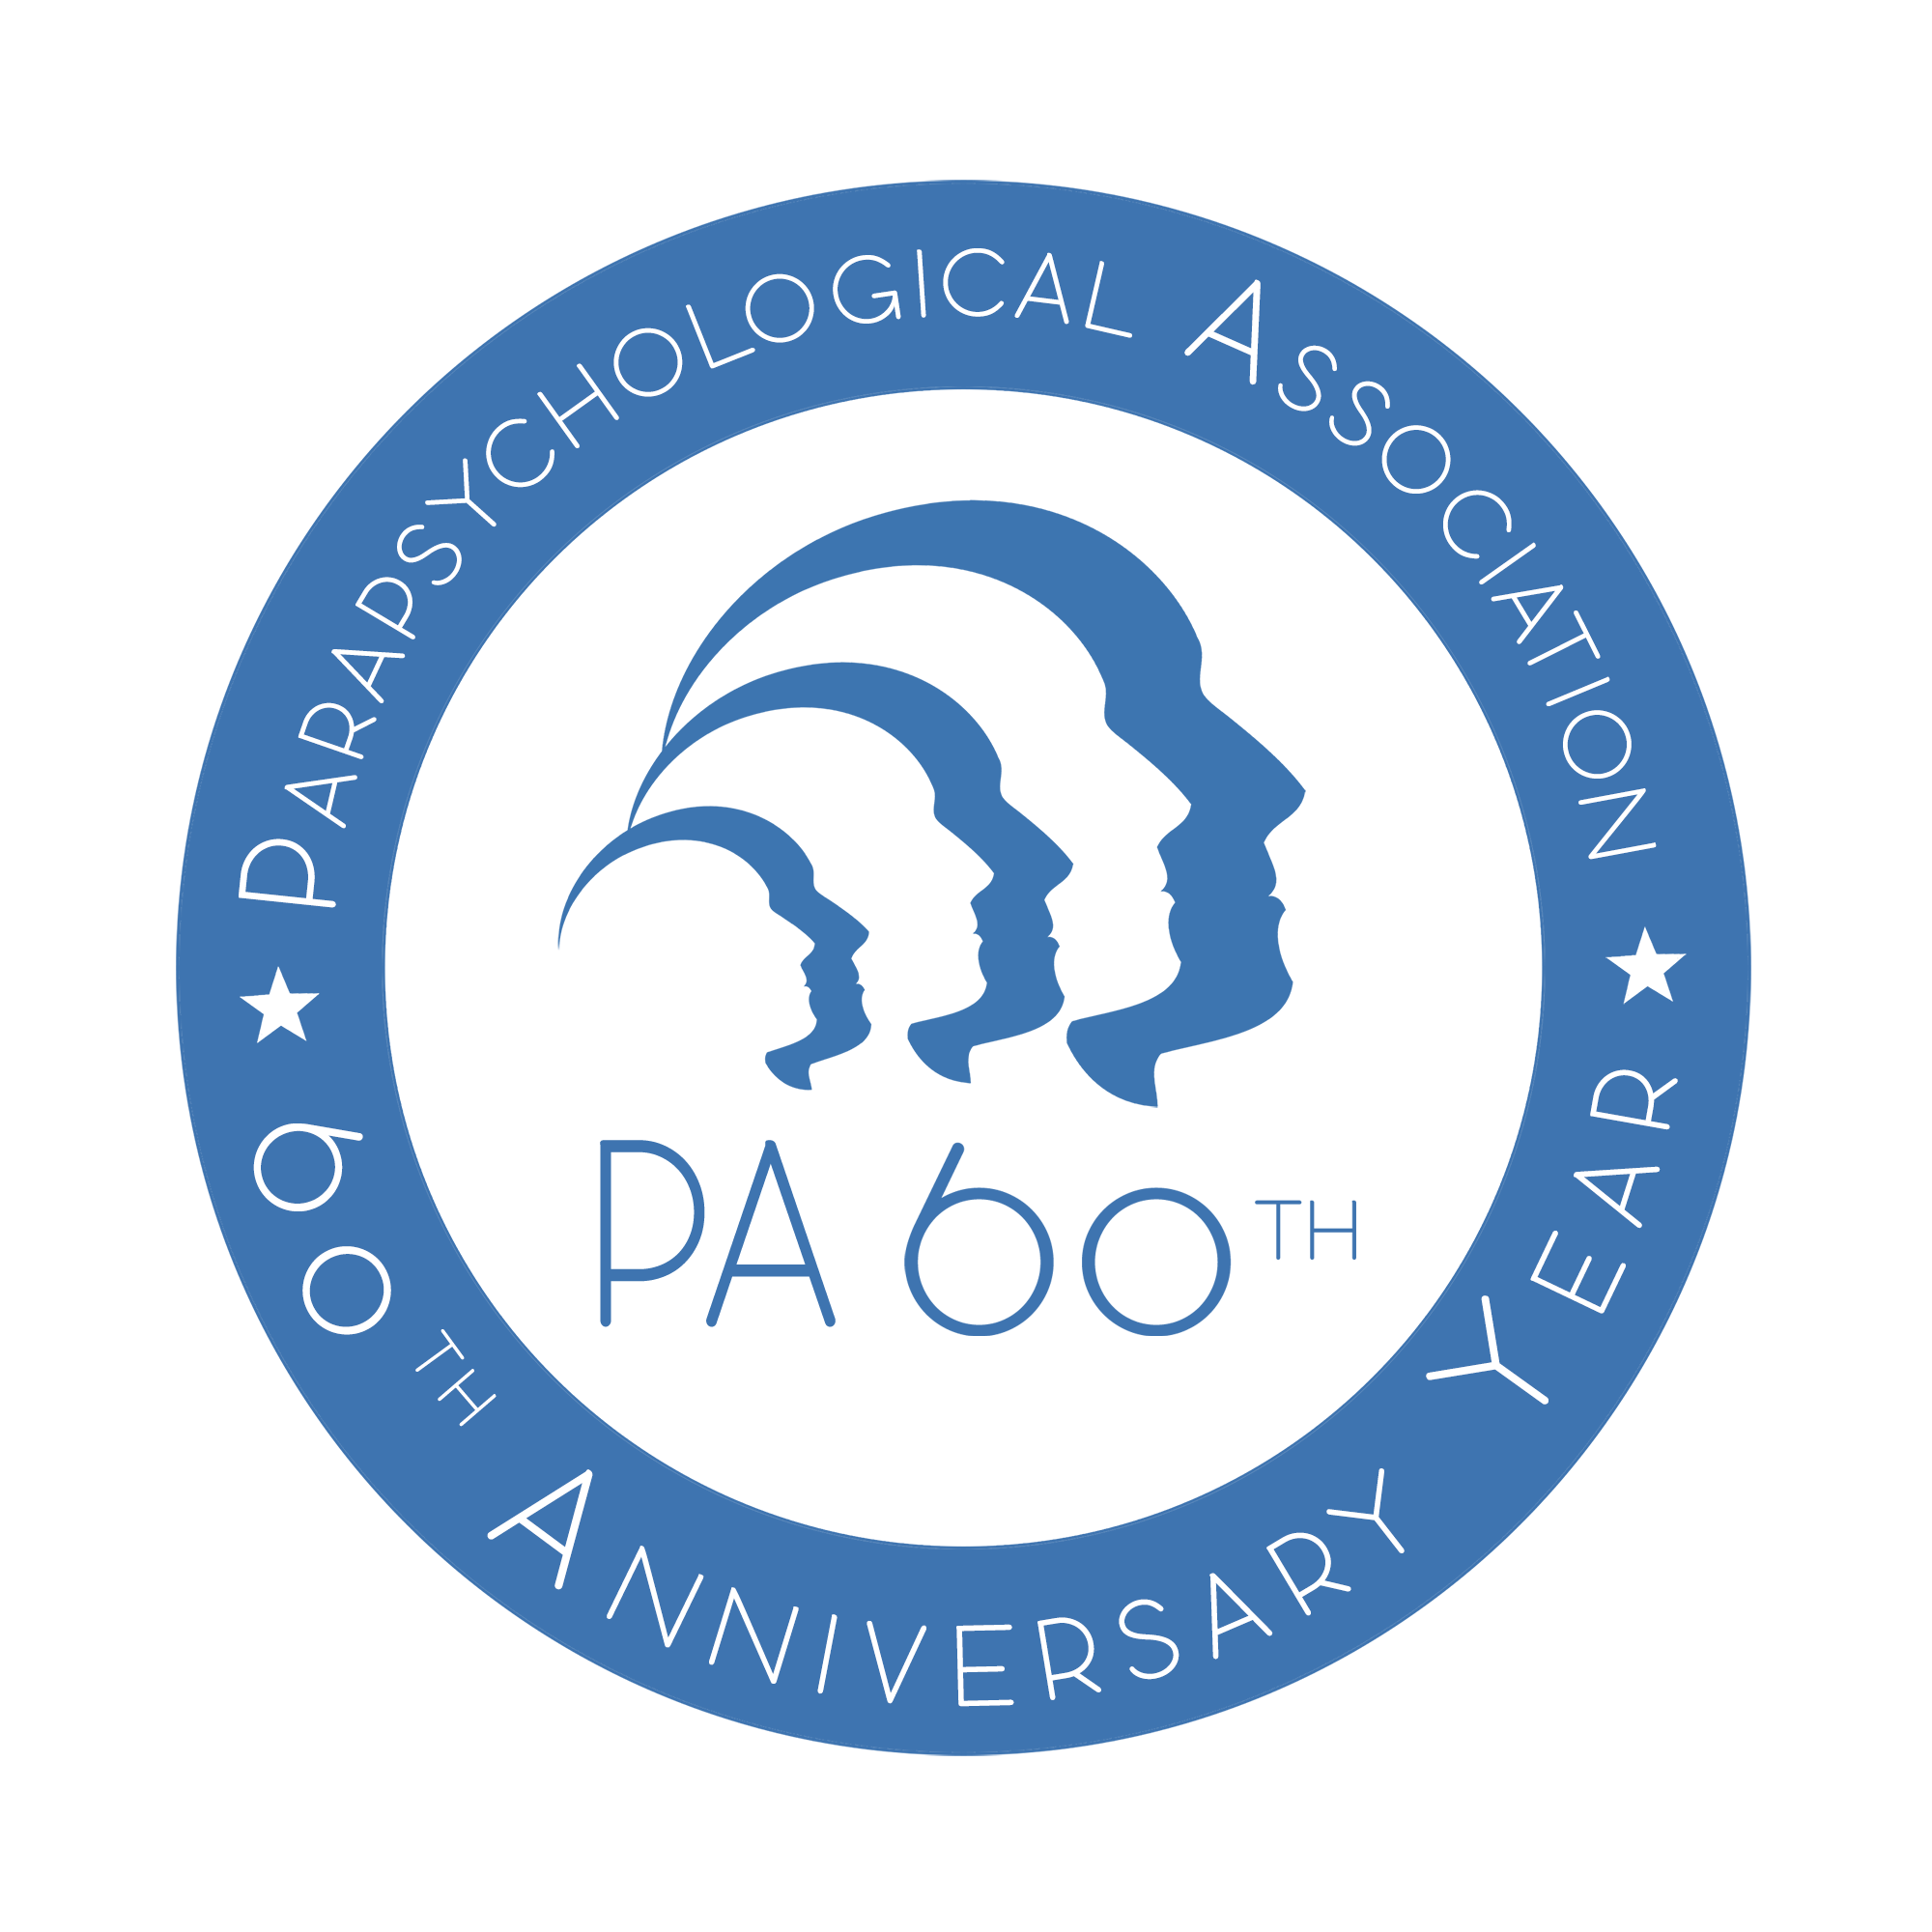 PA 60th Year Archive Project Photo